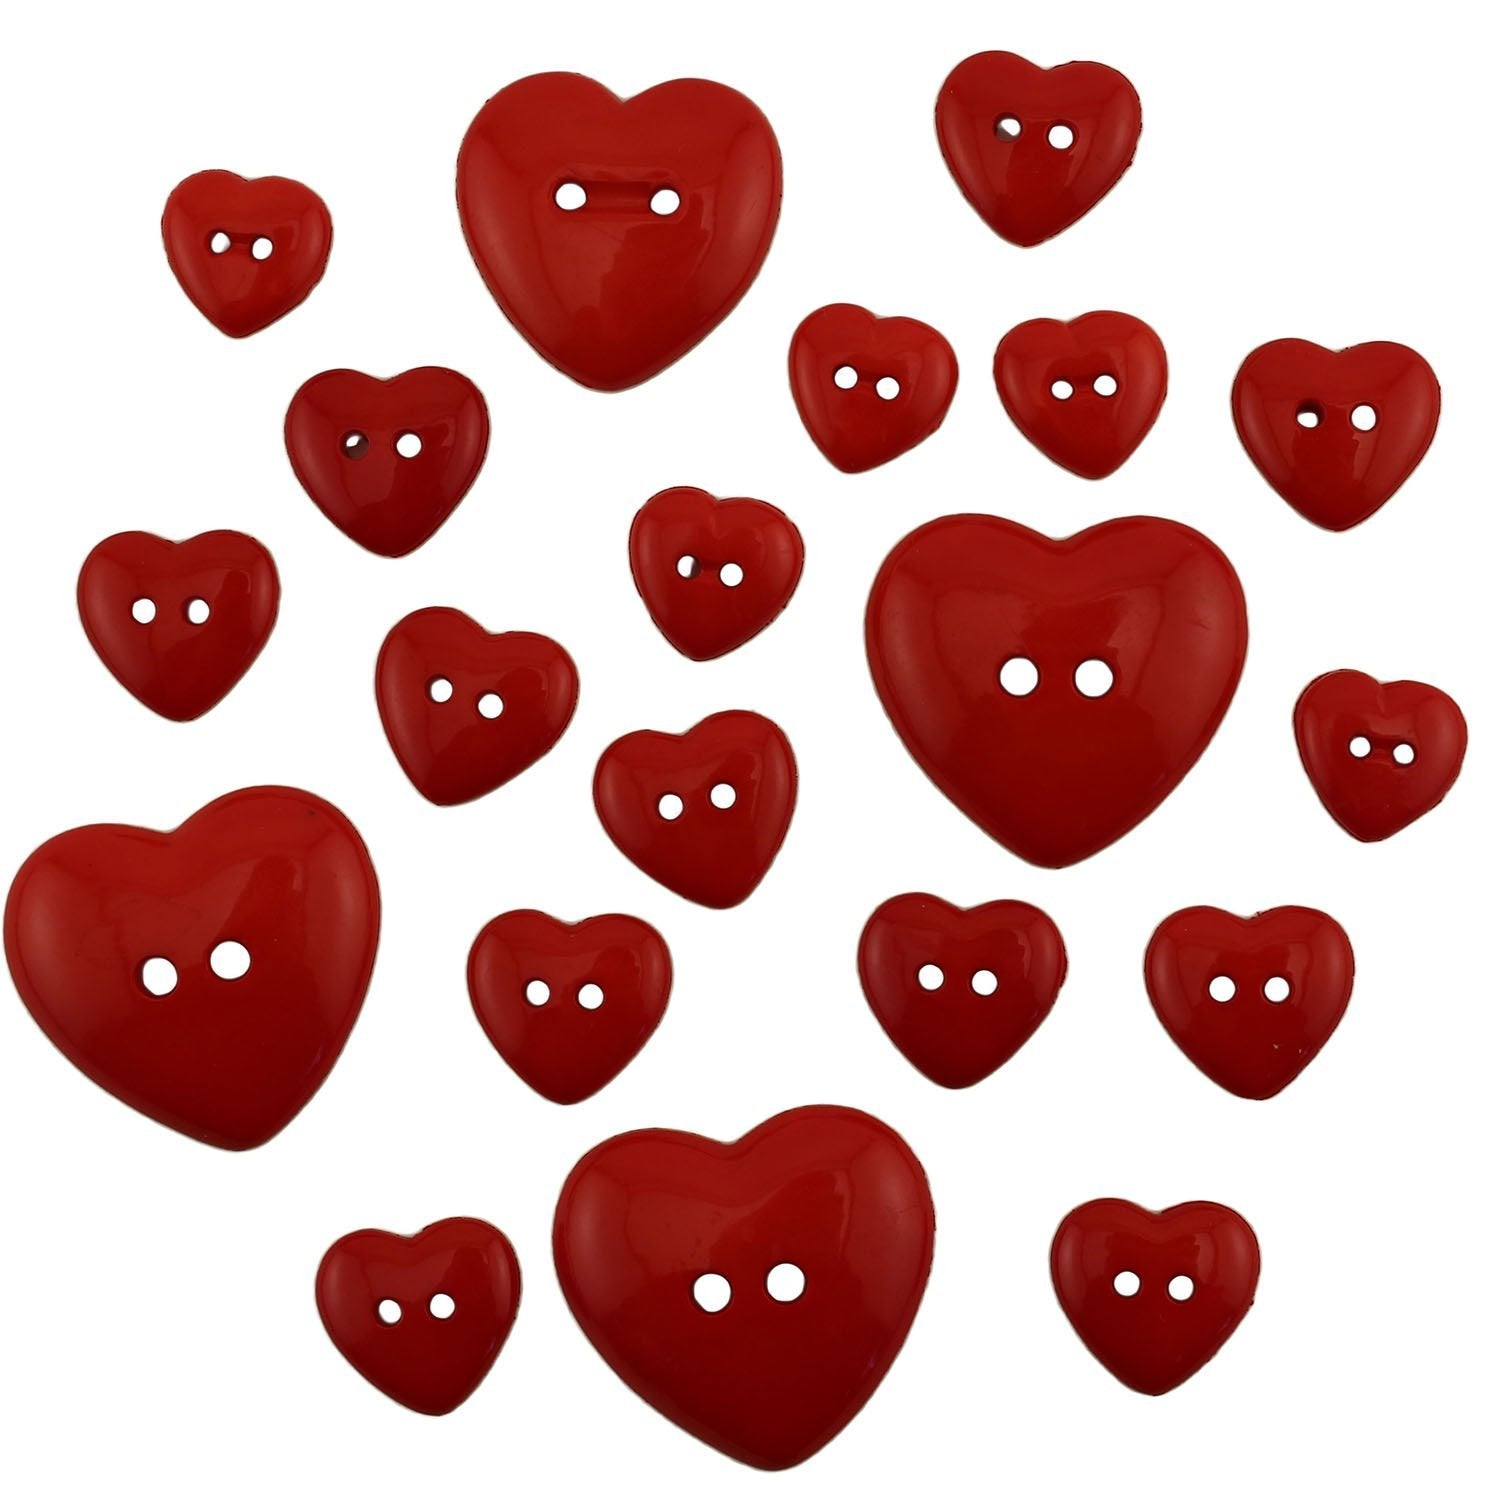 Red Hearts-4127